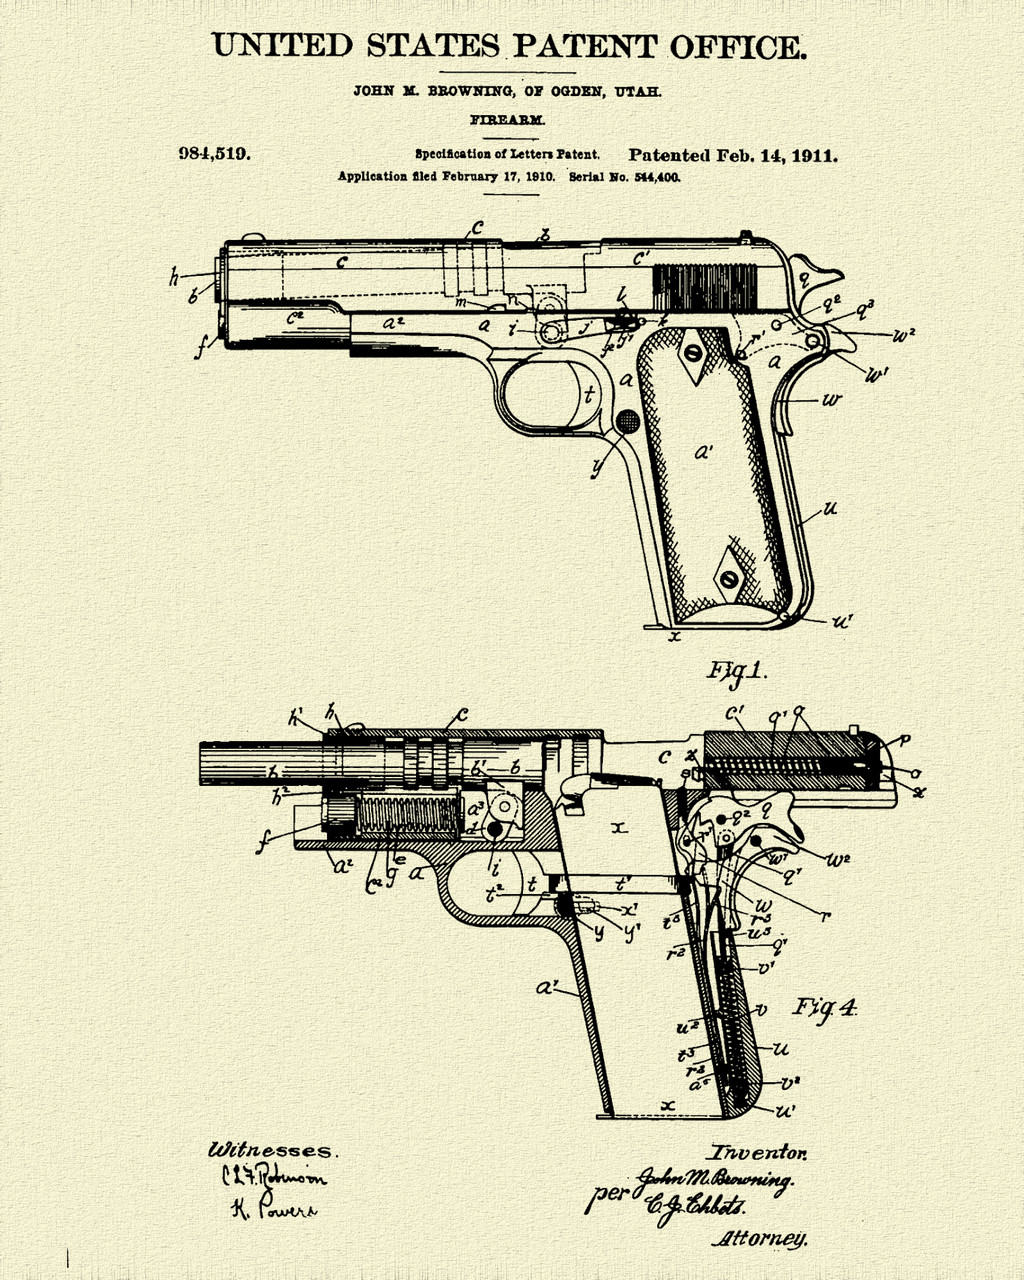 Colt 1911 Semi Auto Patent Print Dye Sublimation & Heat Infused Pressed Wall Art 8.5 Inches by 11 Inches